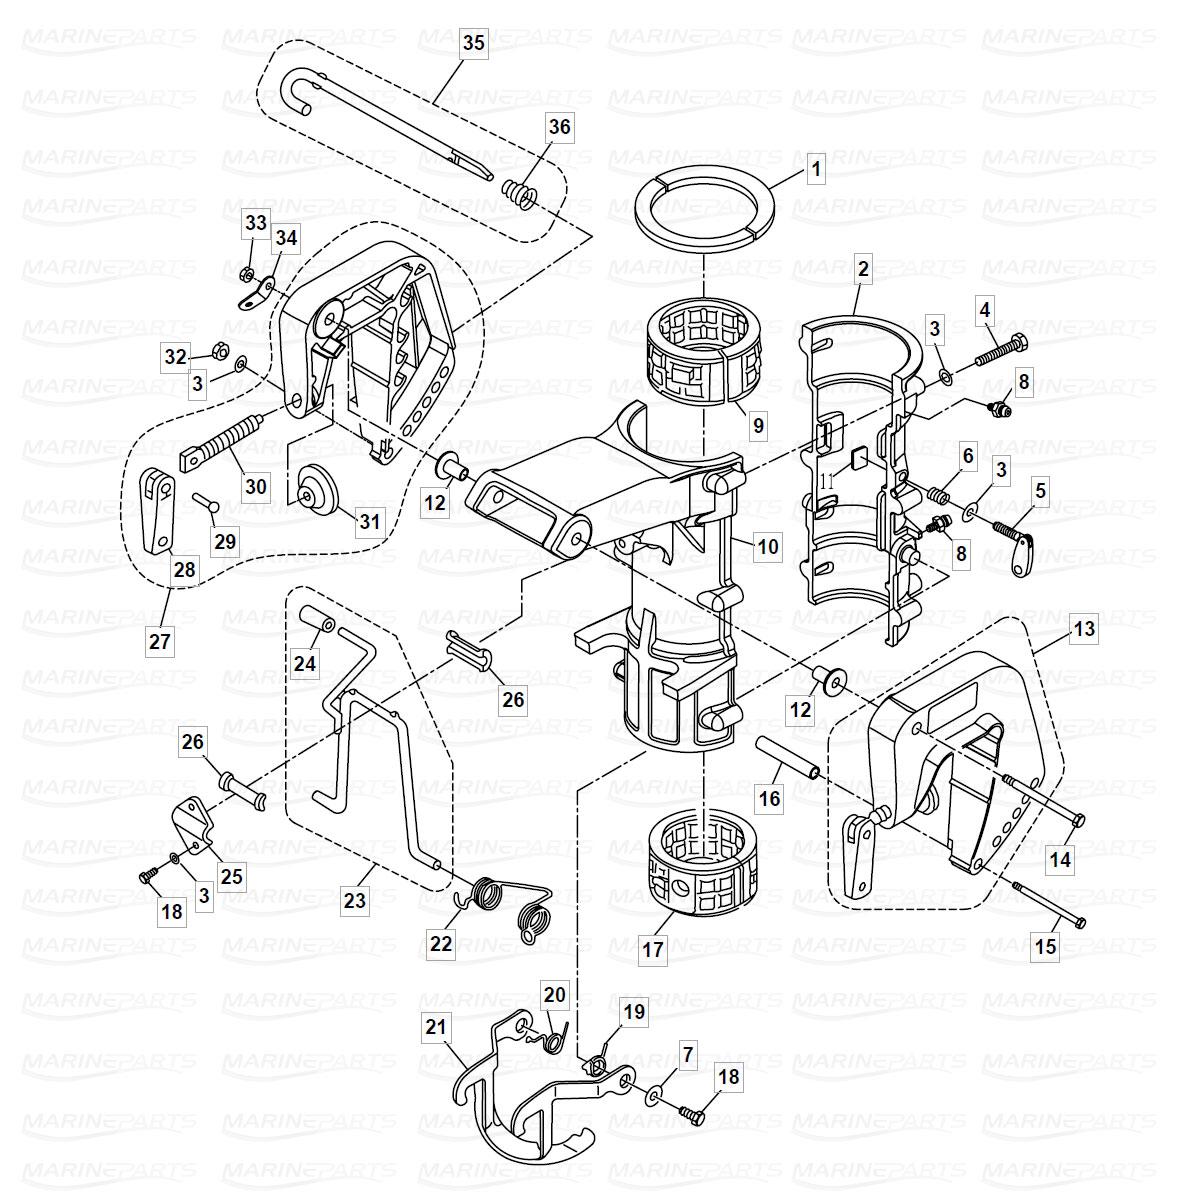 Exploded view mounting bracket and engine flag, Parsun 6 hp